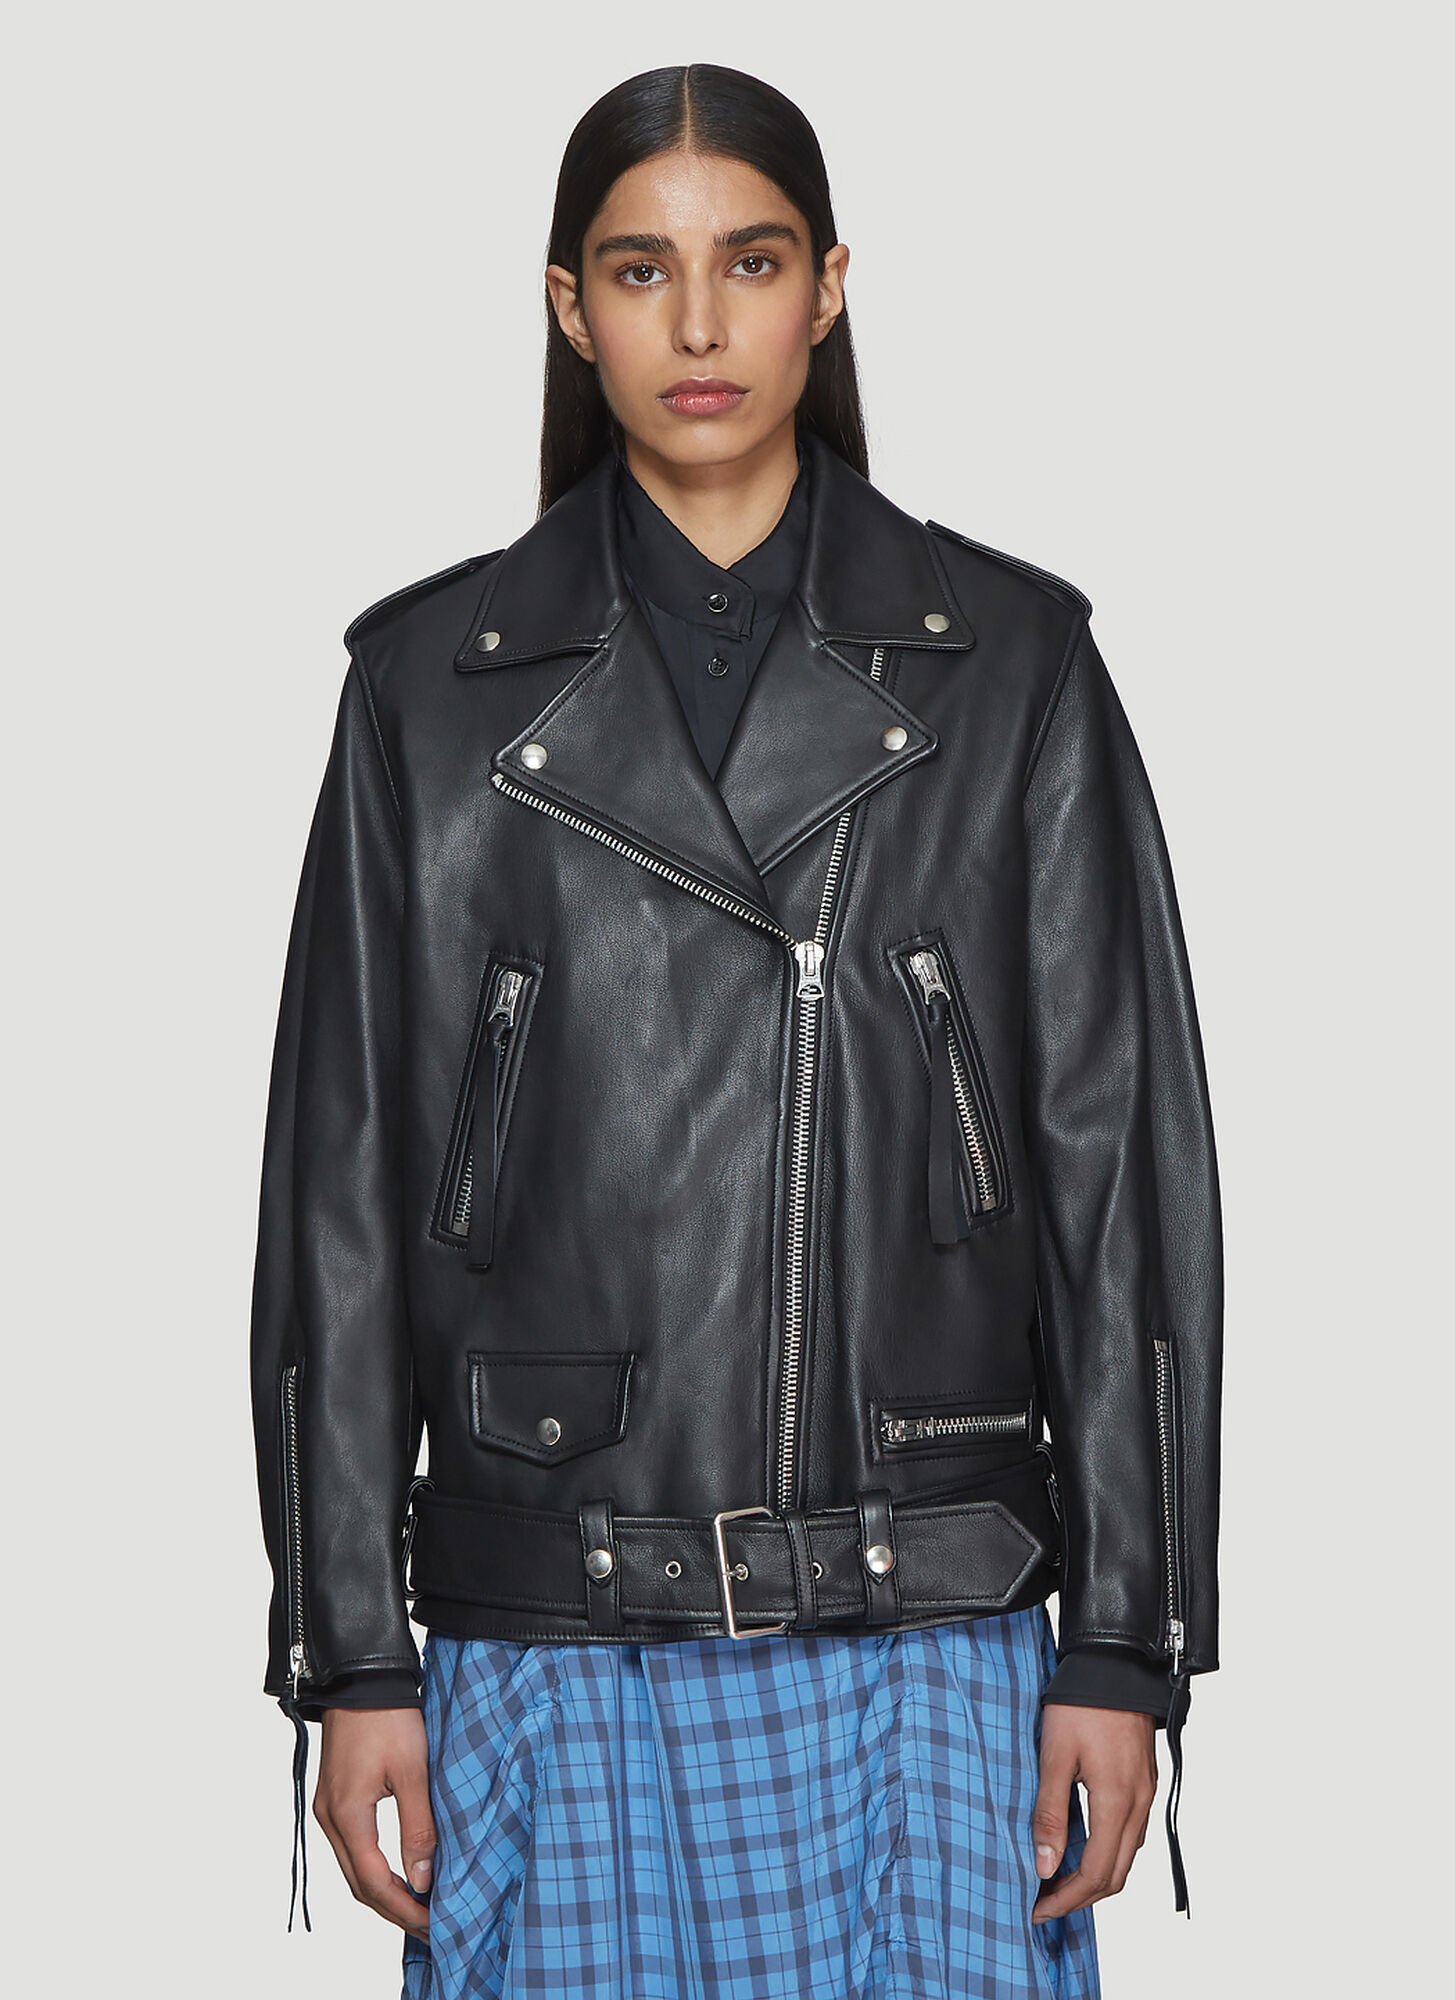 Acne Studios Oversized Leather Jacket In Black